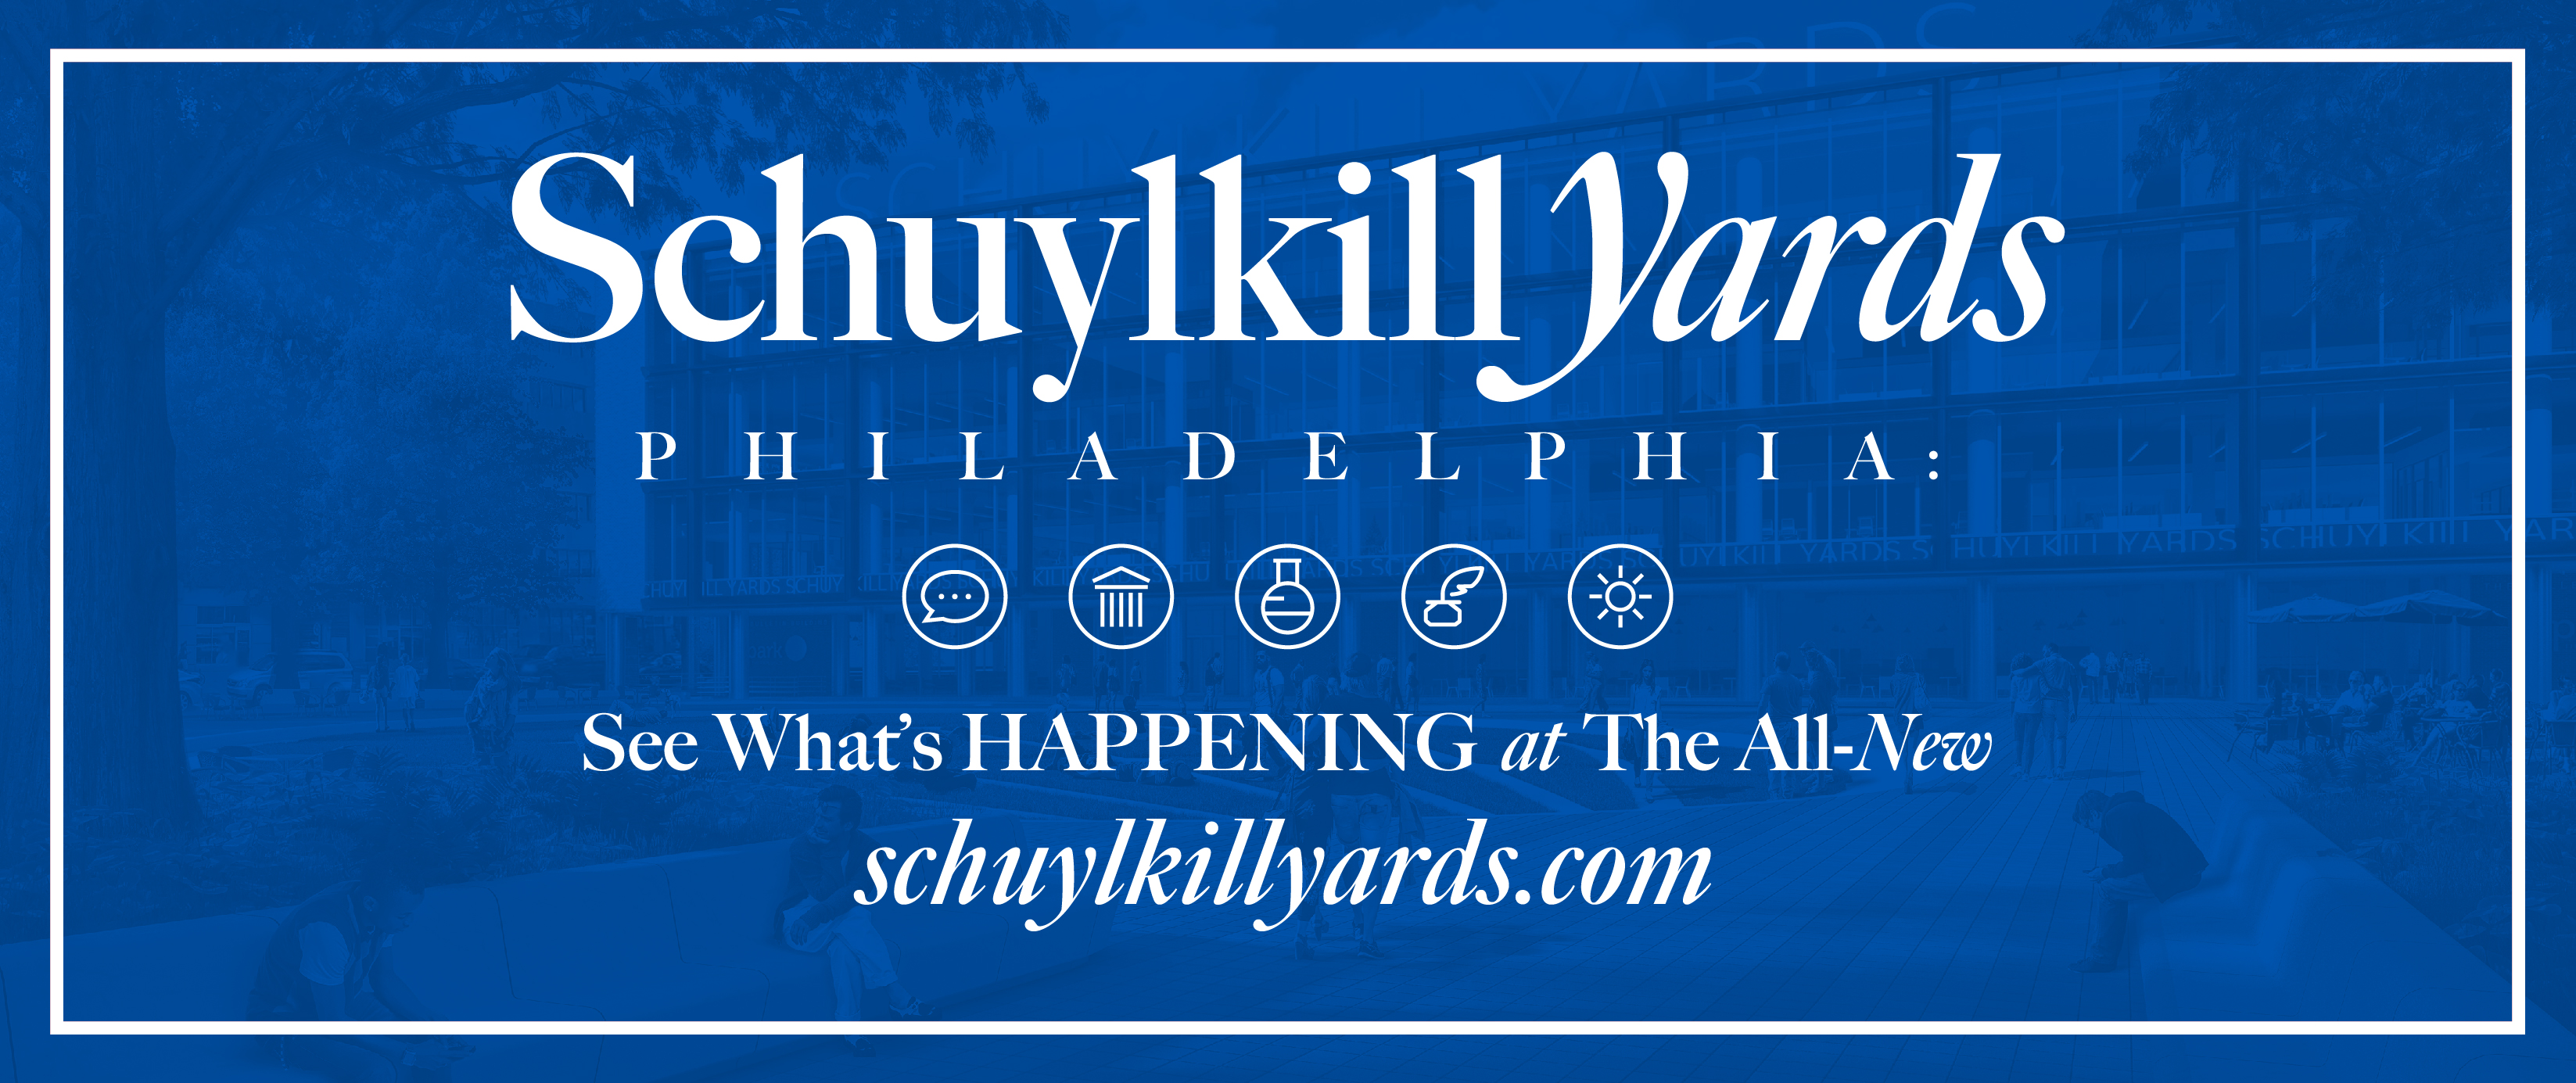 "Drexel & Brandywine Partner On Philadelphia's ""Schuylkill Yards"" Innovation Development"